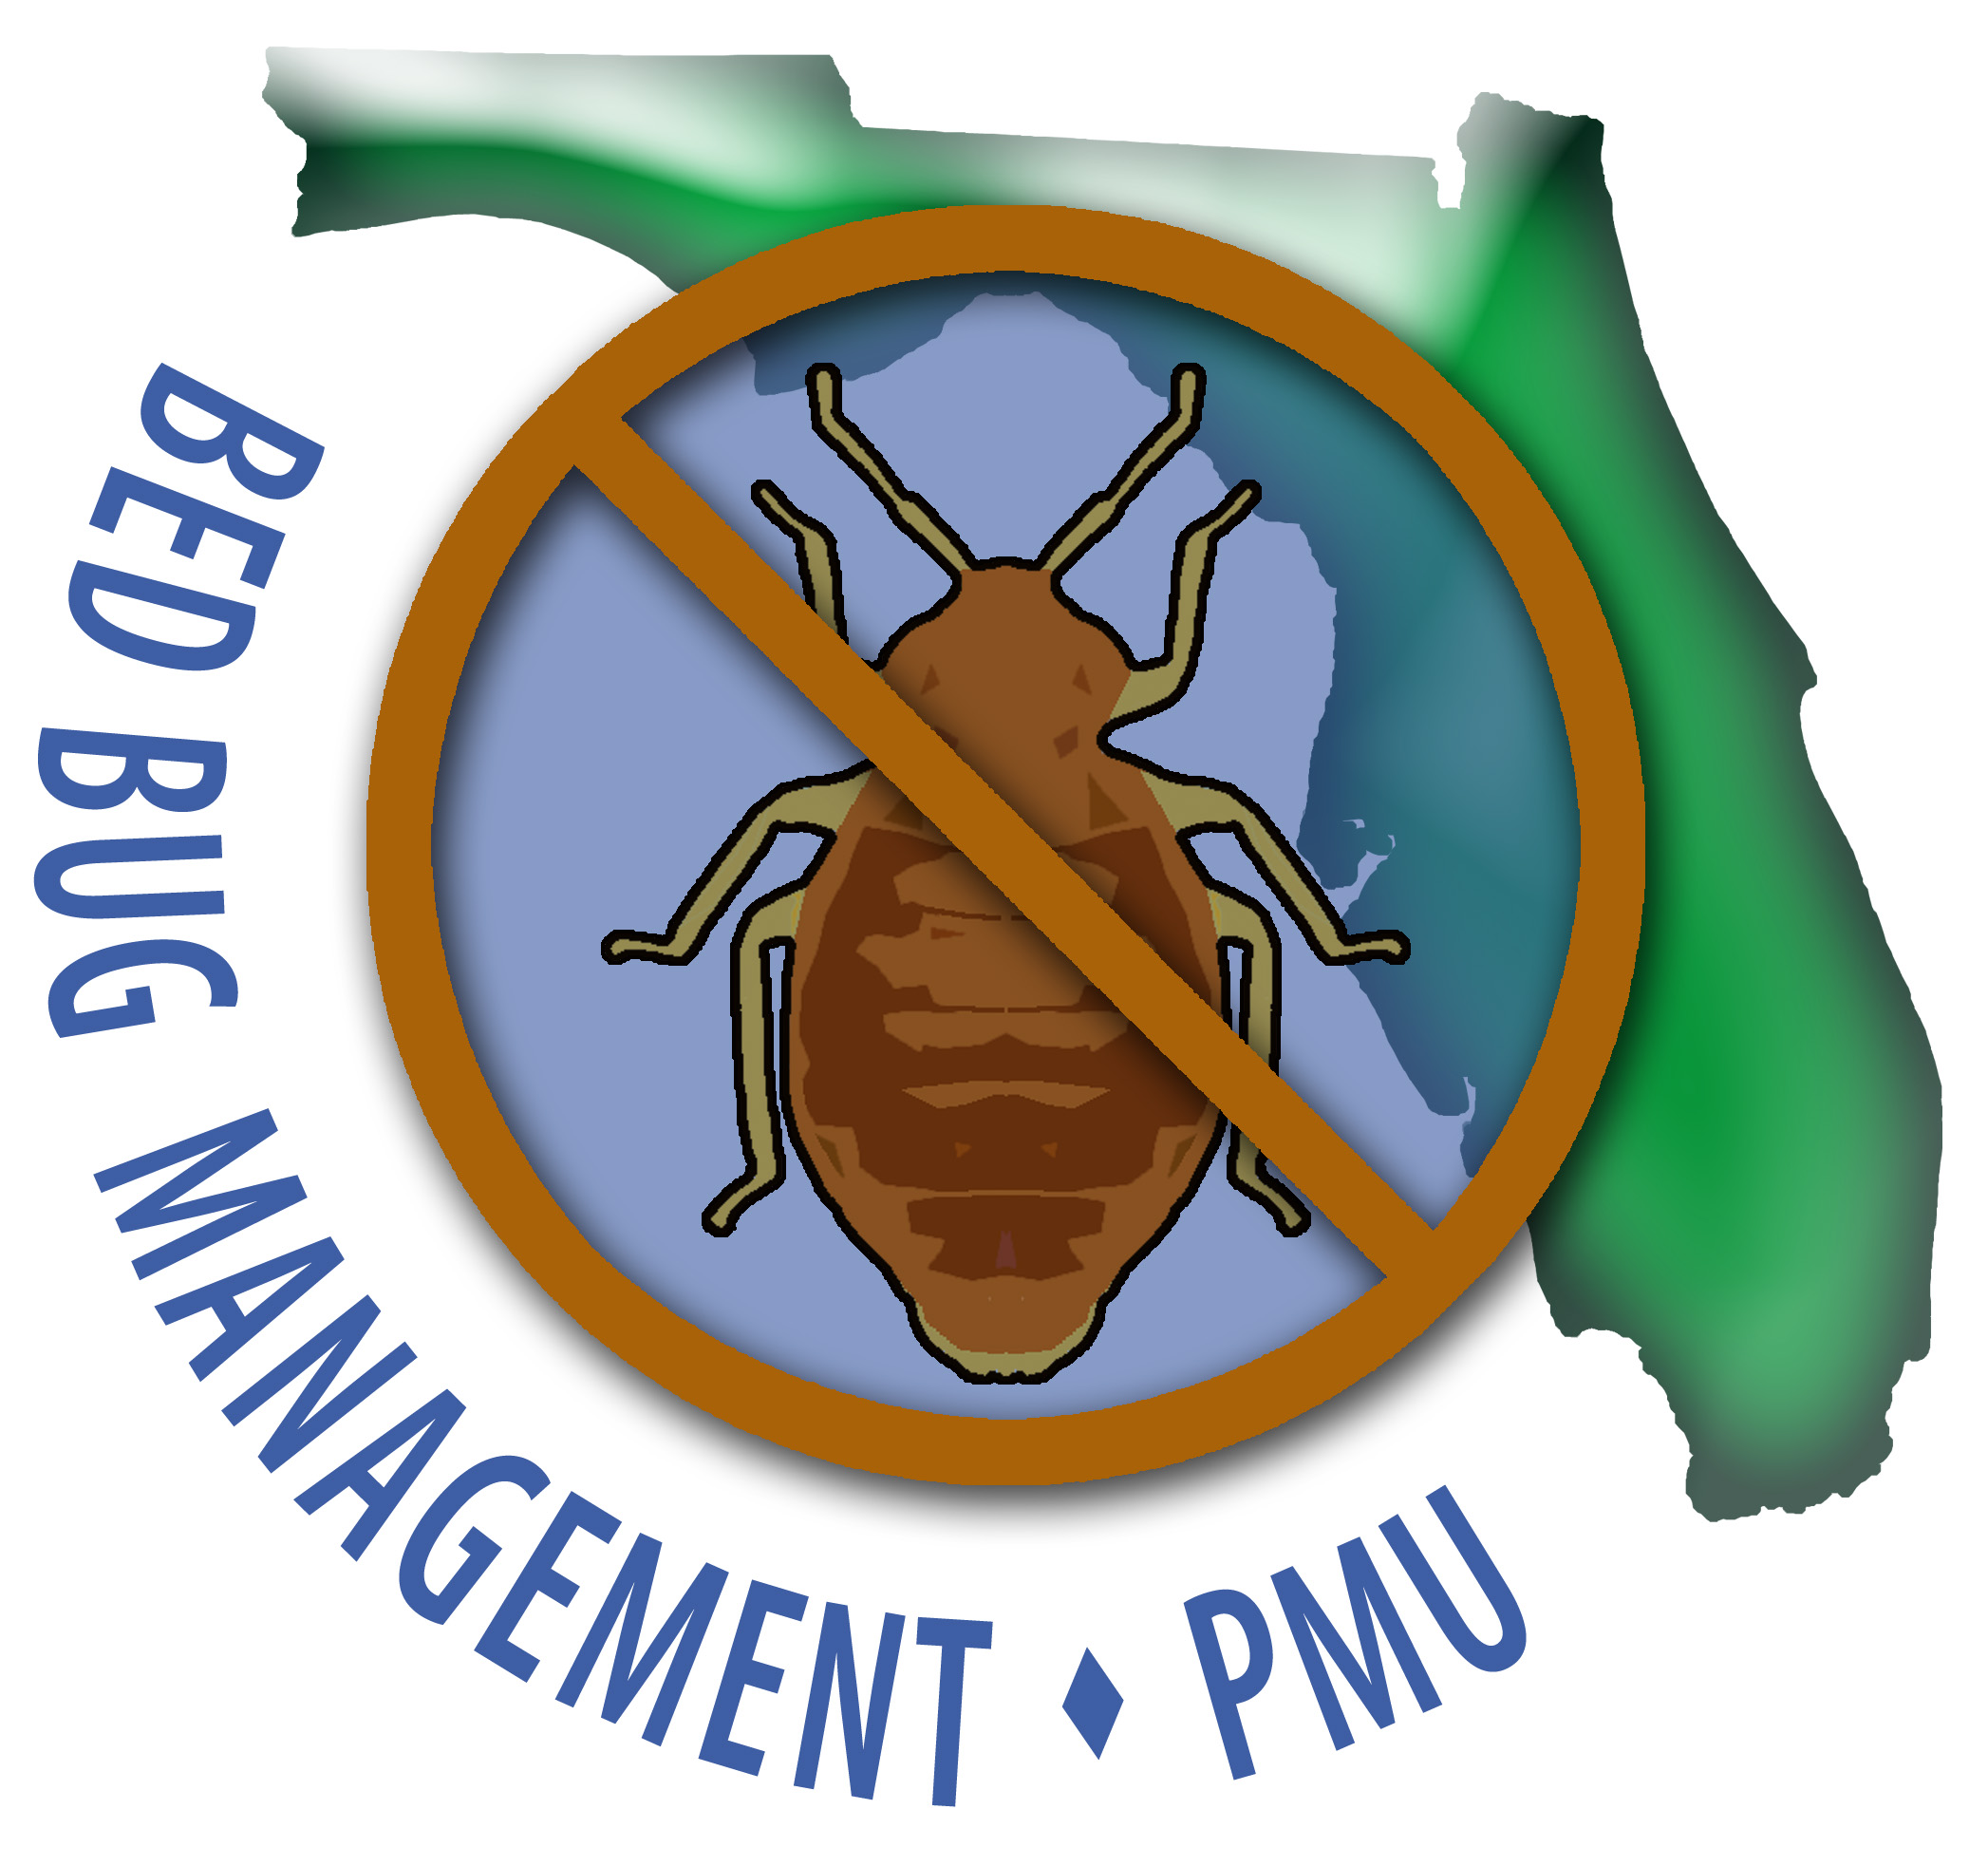 Bed Bug PMU Logo